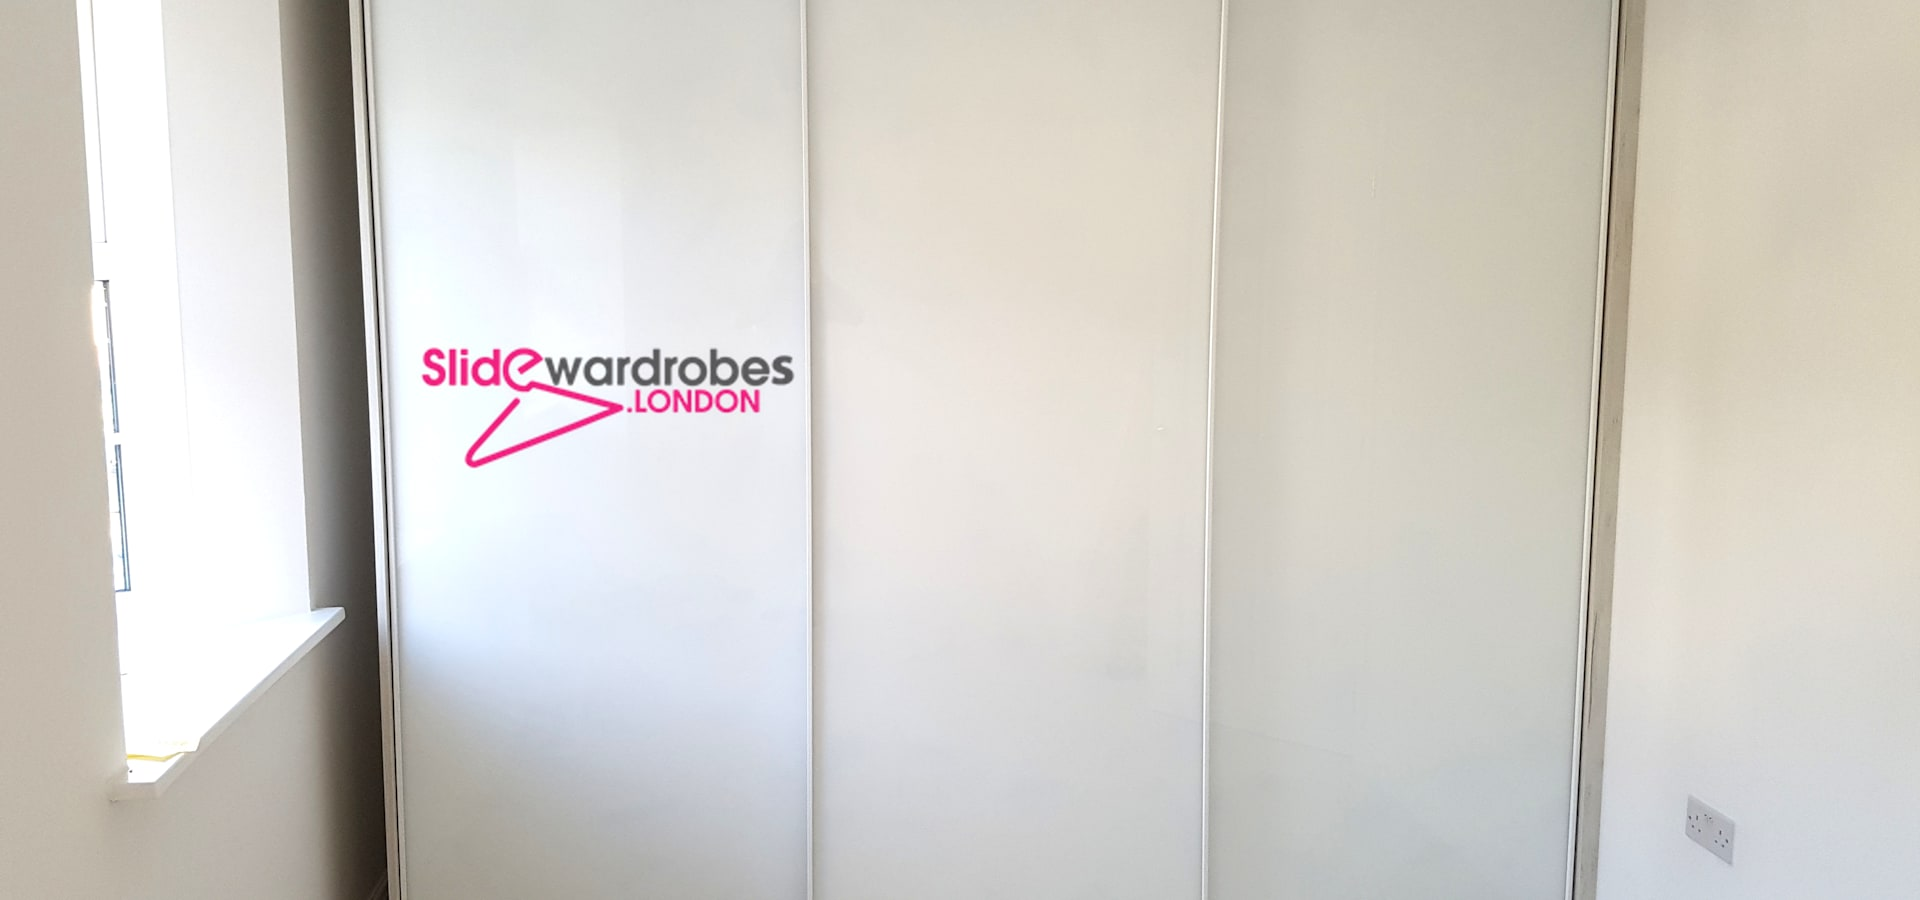 Slide Wardrobes London